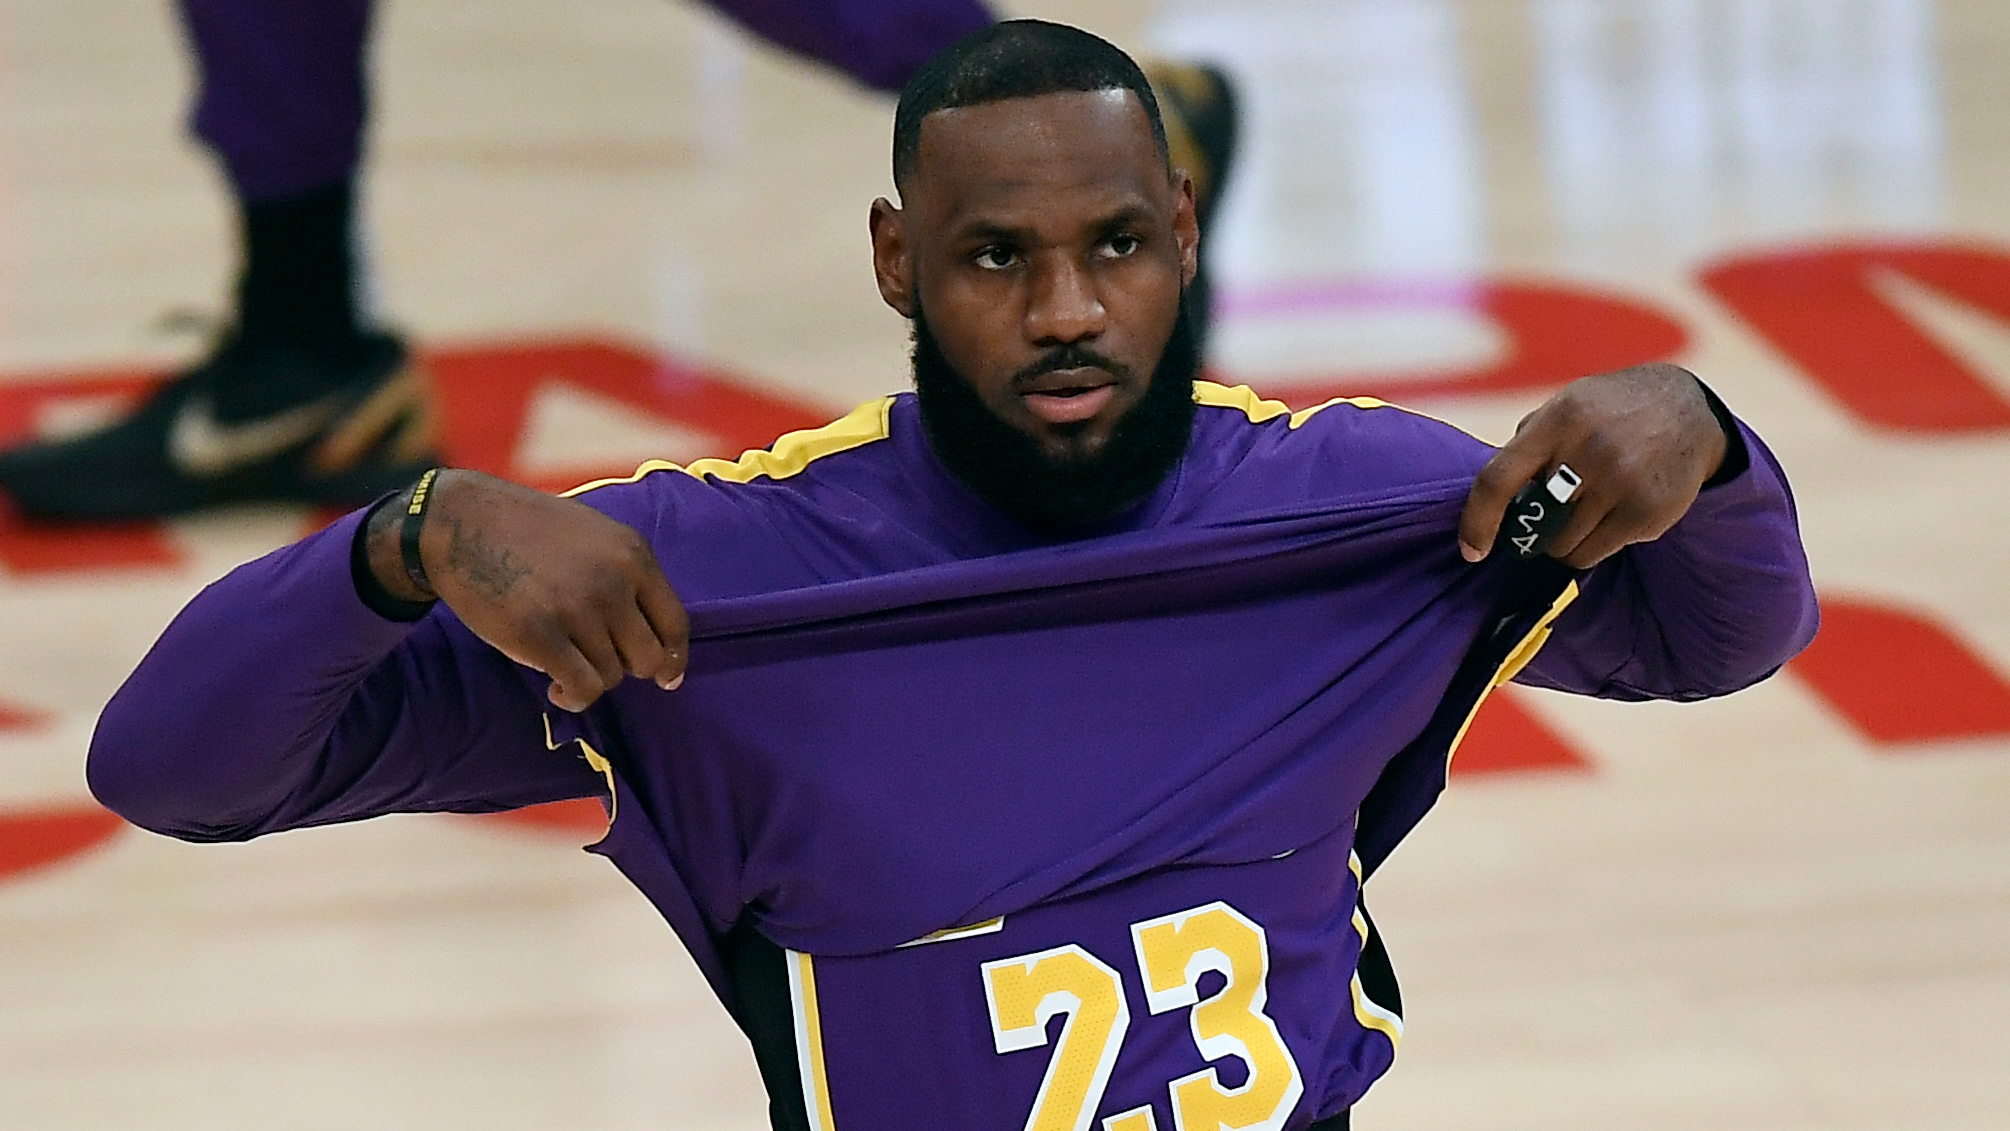 LeBron James sits out Lakers-Nuggets clash after re-aggravating ankle issue